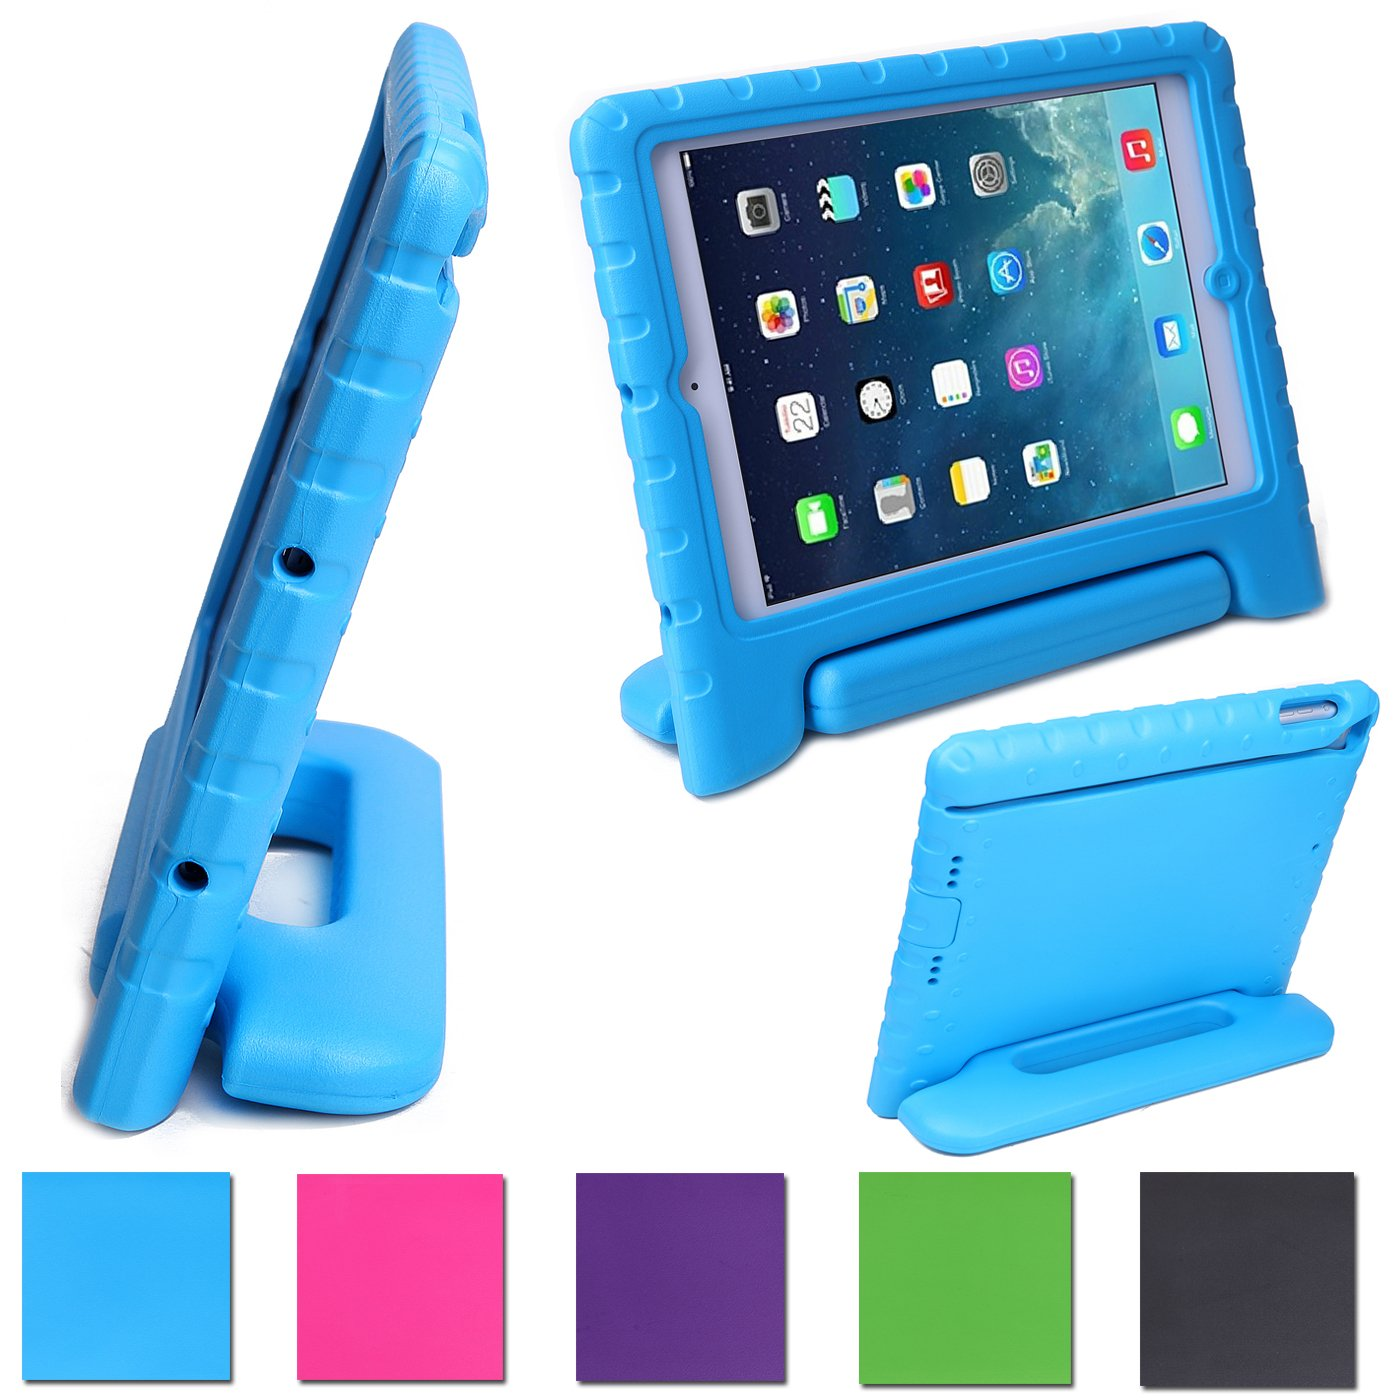 HDE Kids Light Weight Shock Proof Handle Case for iPad Mini / Mini 2 / Mini 3 / Retina